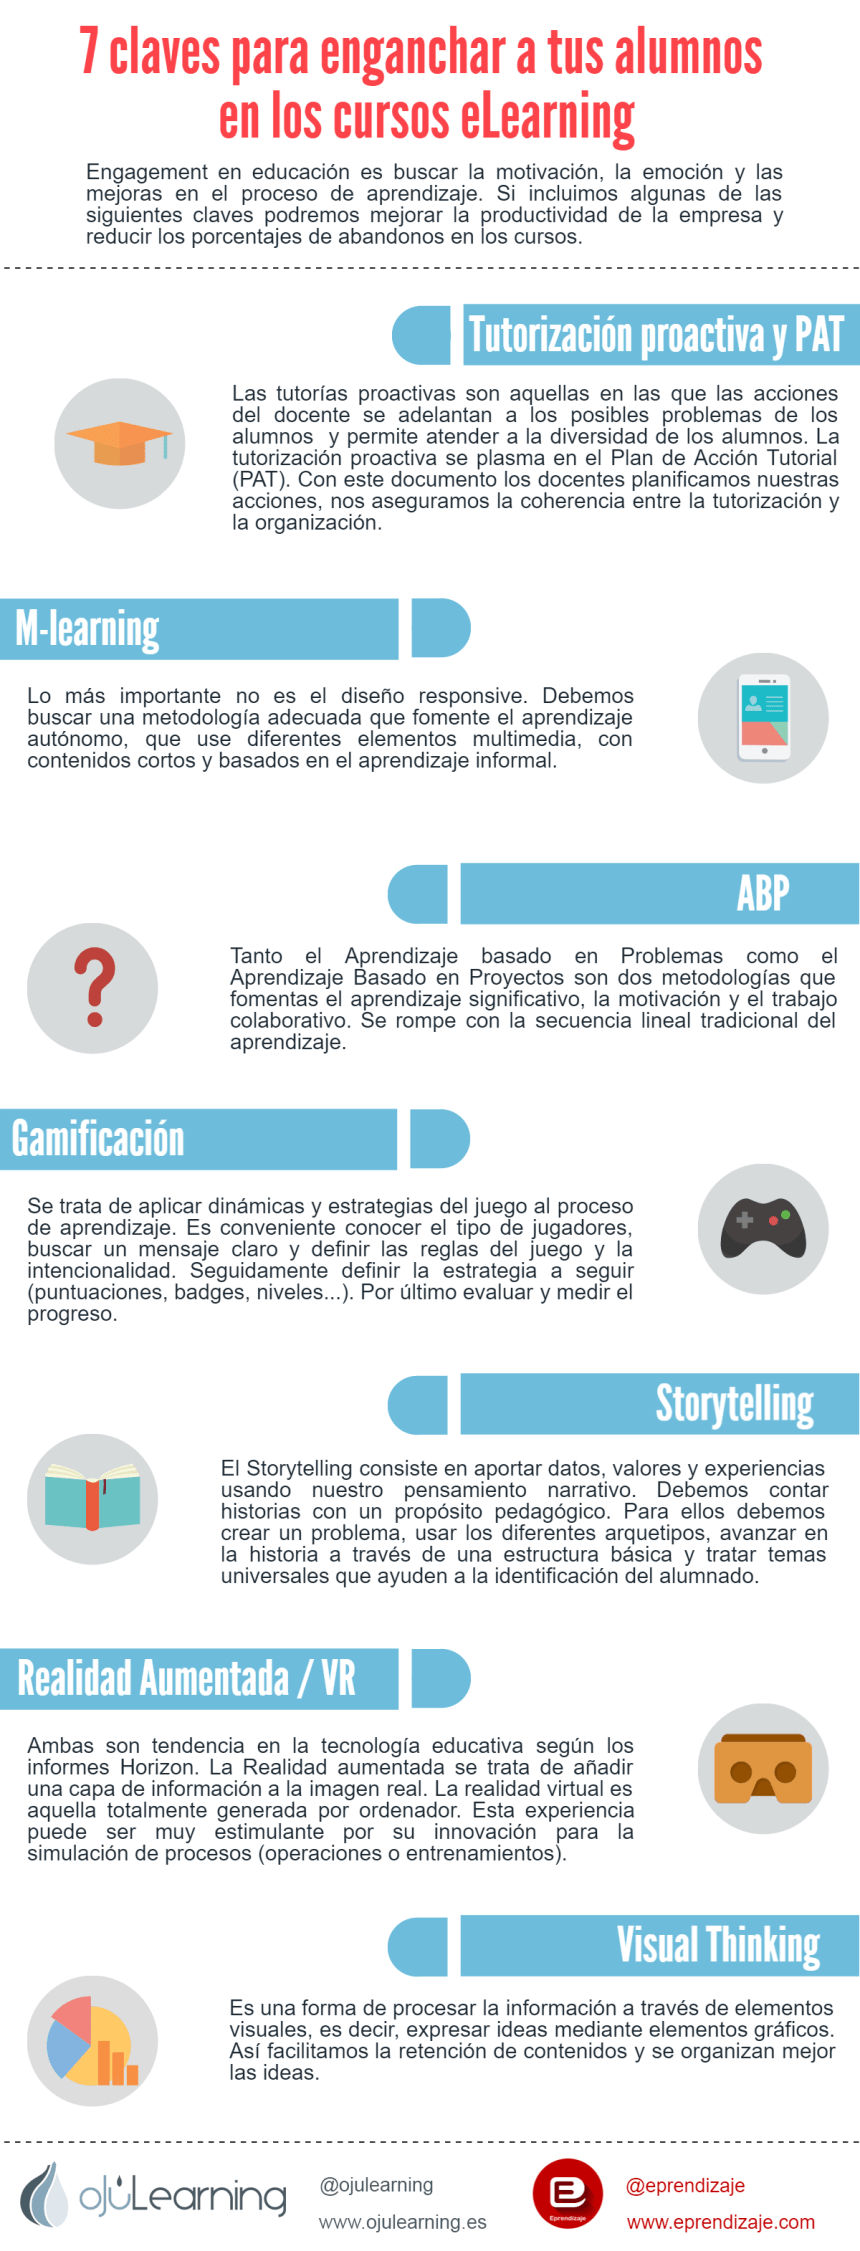 7-claves-elearning-infografia